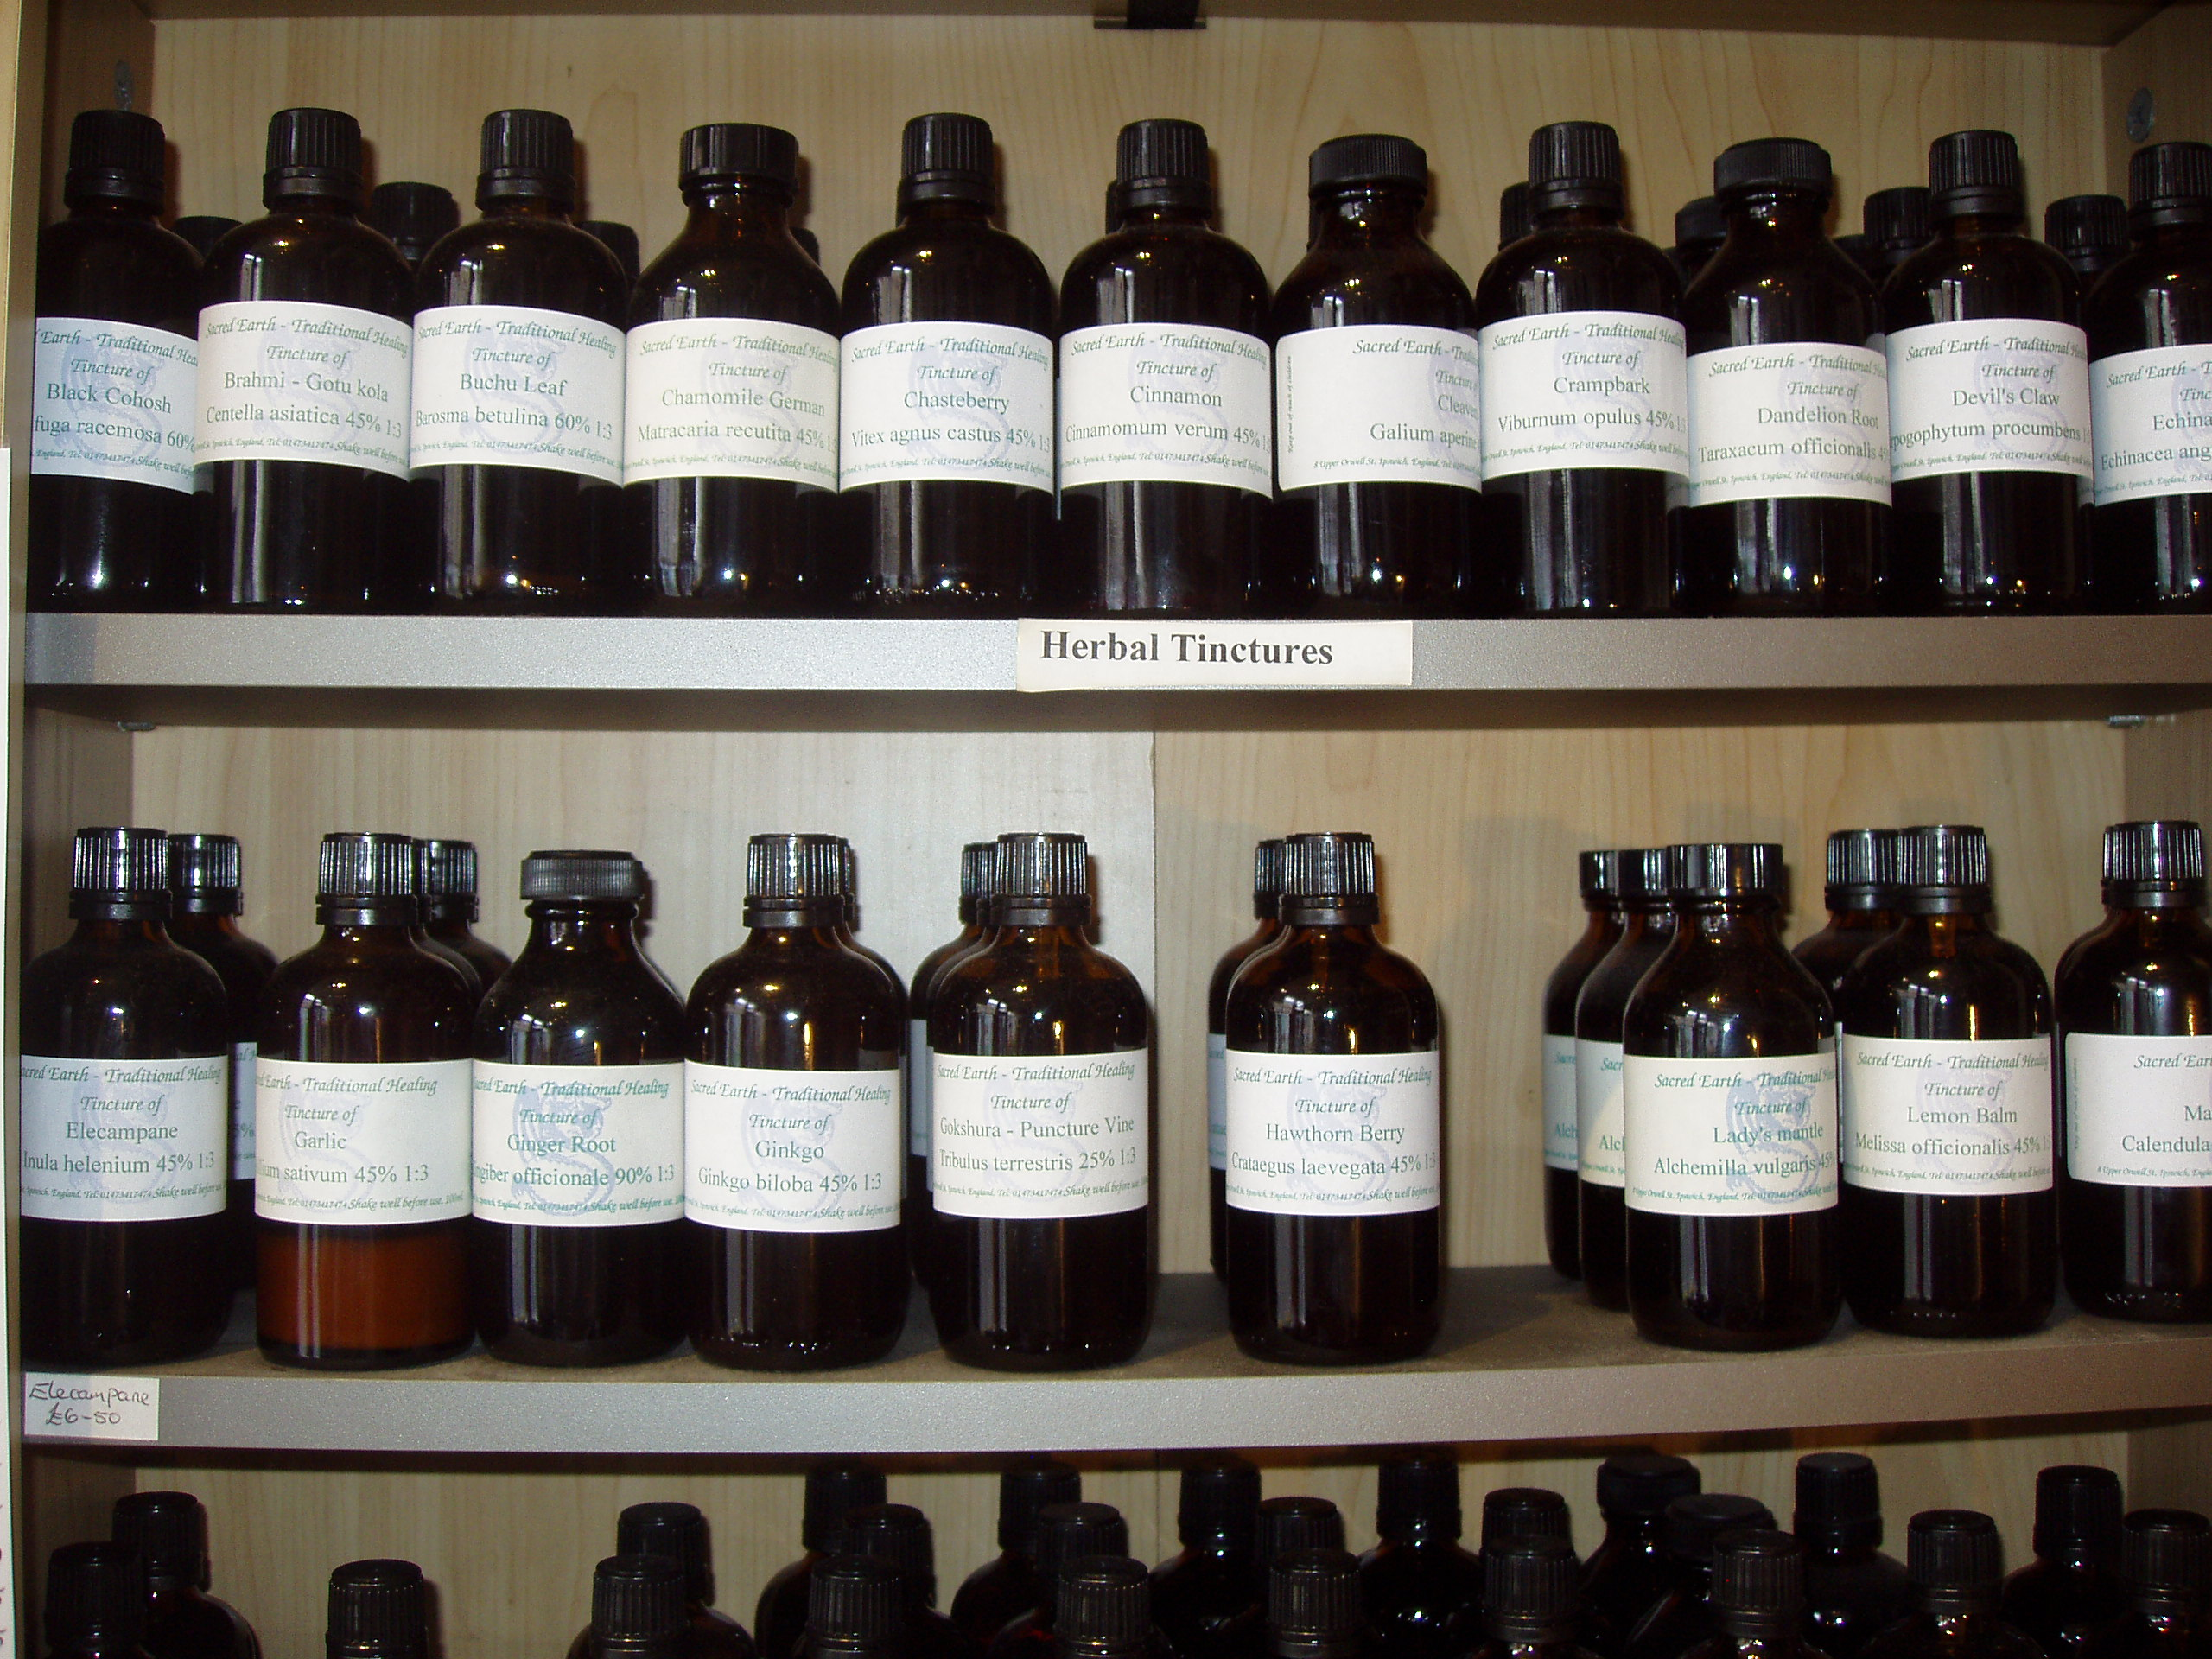 Herbal Tinctures (Mixes) - Detox mix